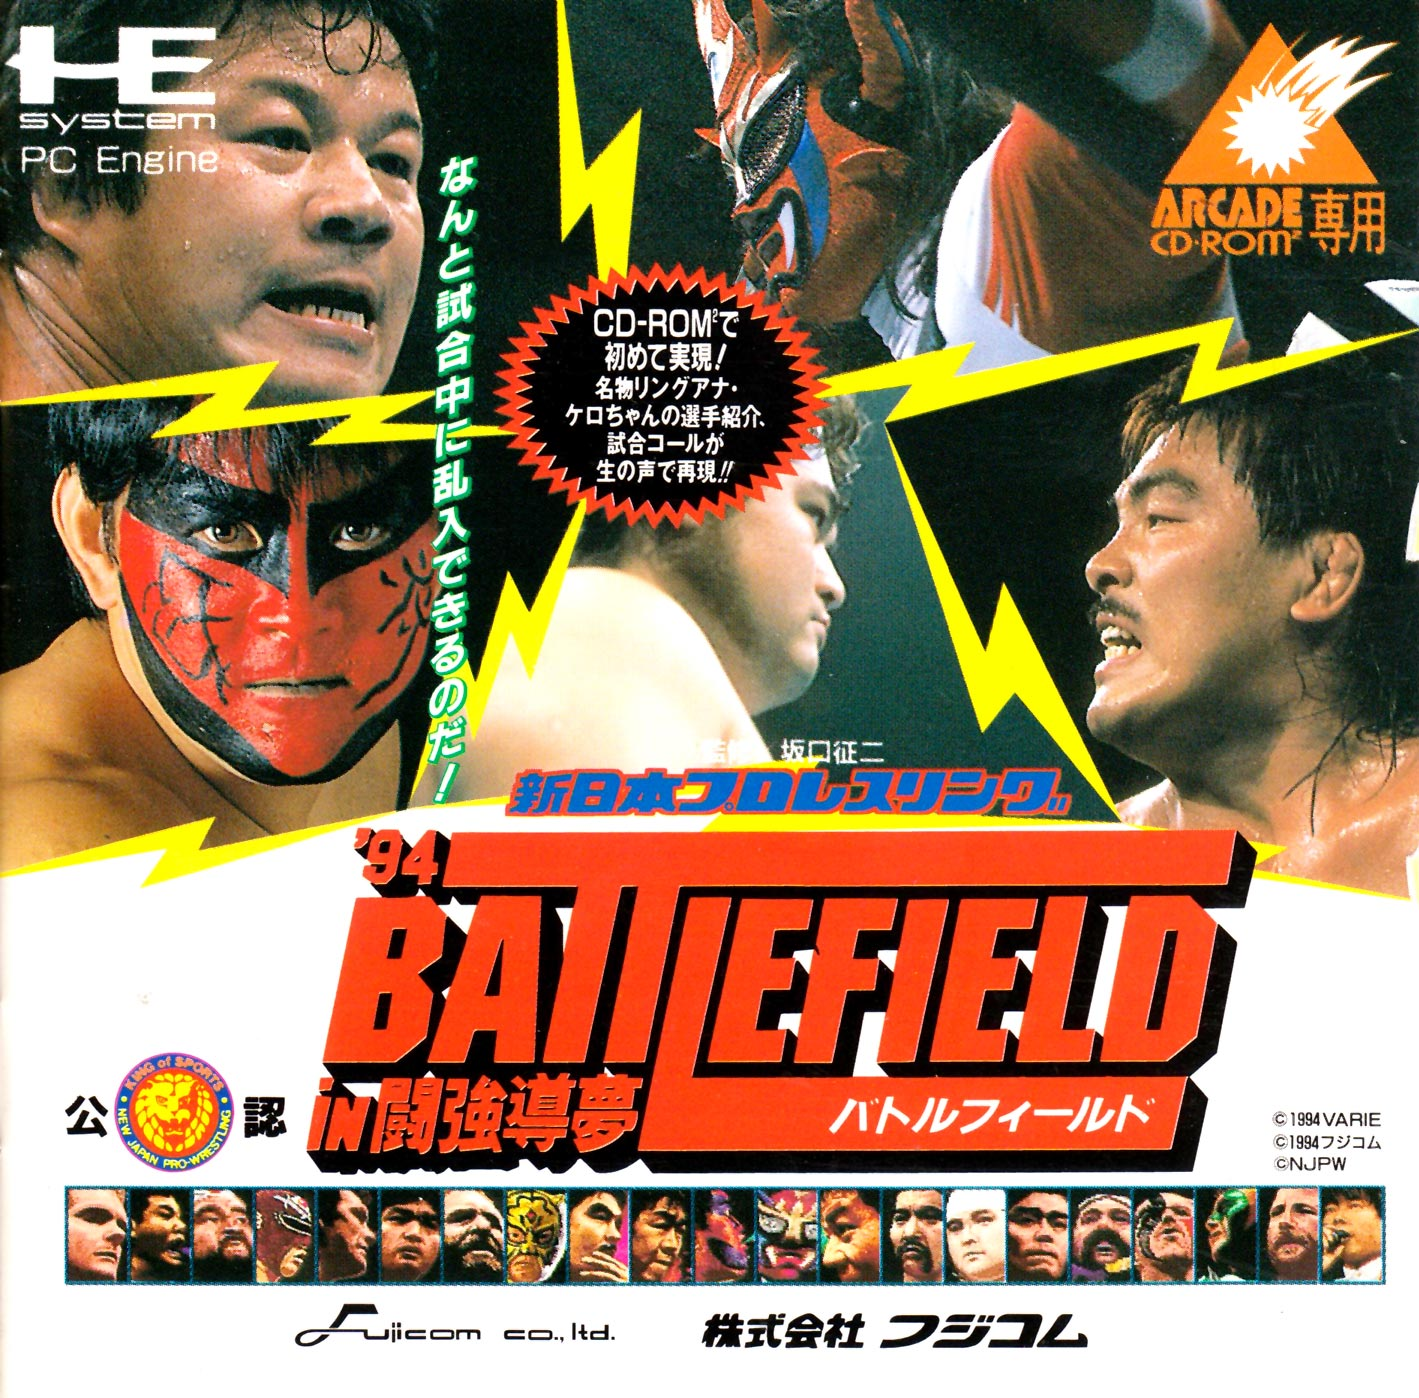 Battlefield '94 in Super Battle Dream - The PC Engine Software Bible